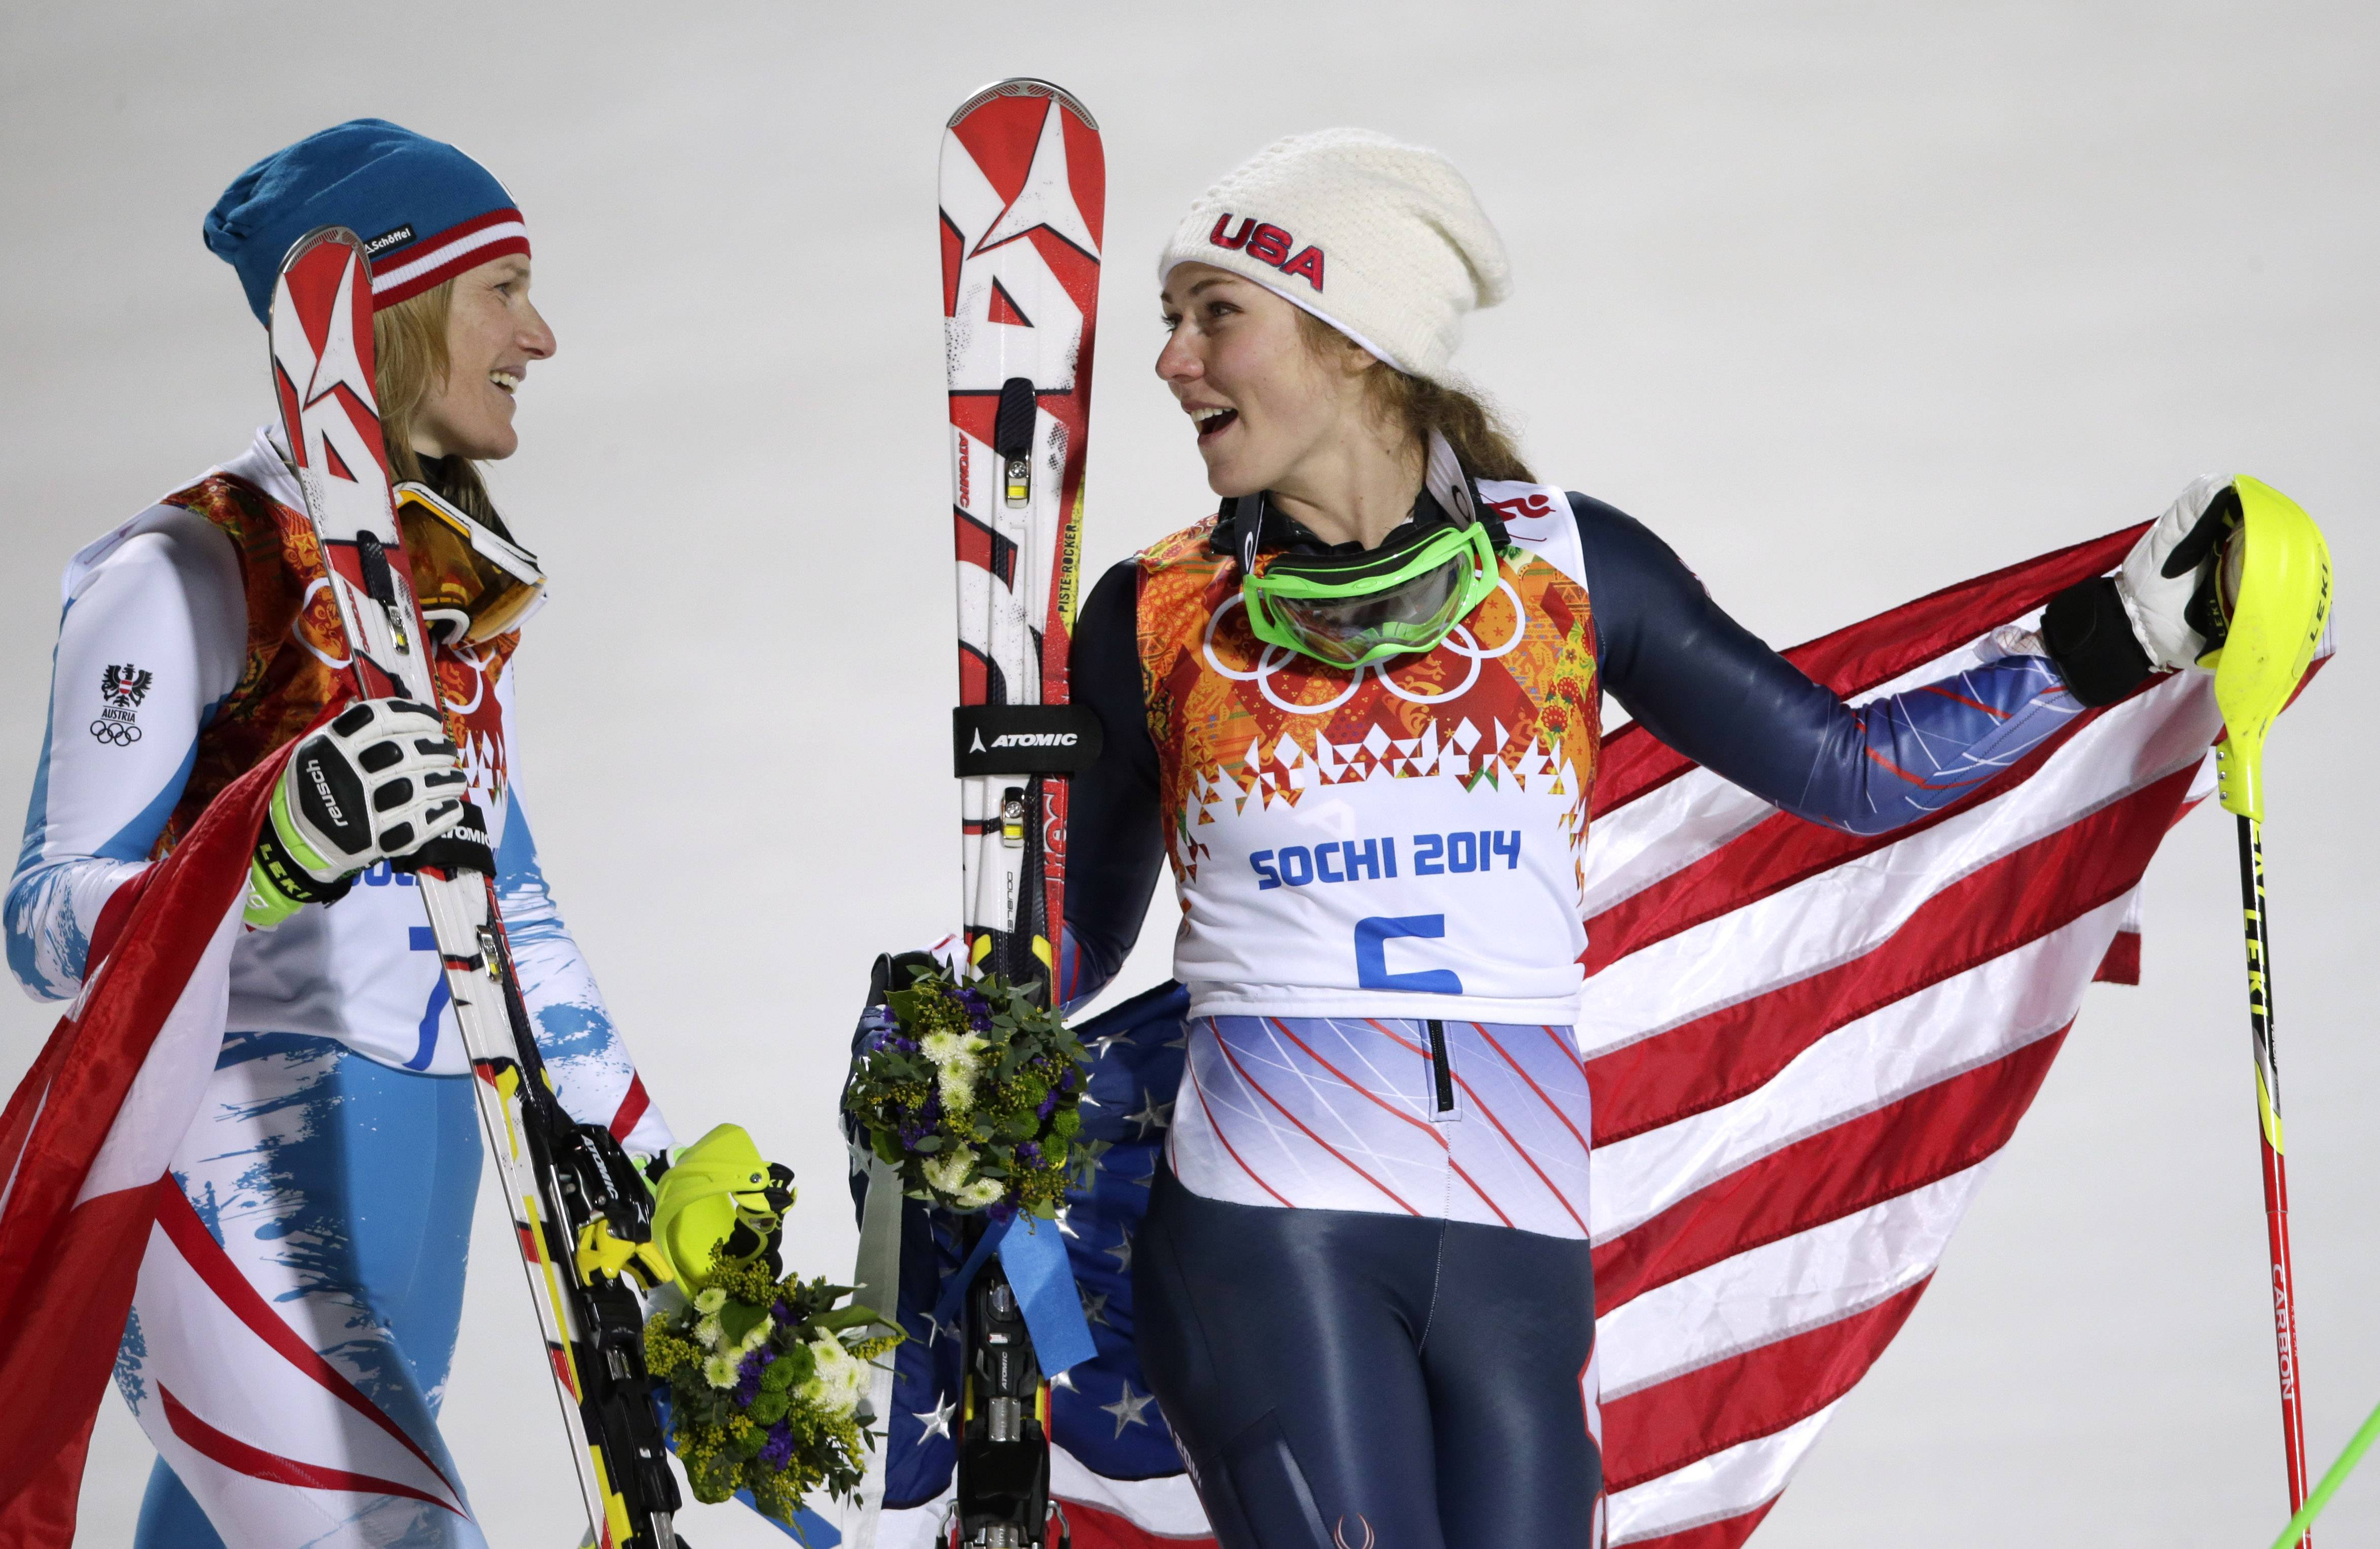 Women's slalom silver medal winner Marlies Schild of Austria, left, and gold medal winner Mikaela Shiffrin of the United States leave the podium after a flower ceremony.